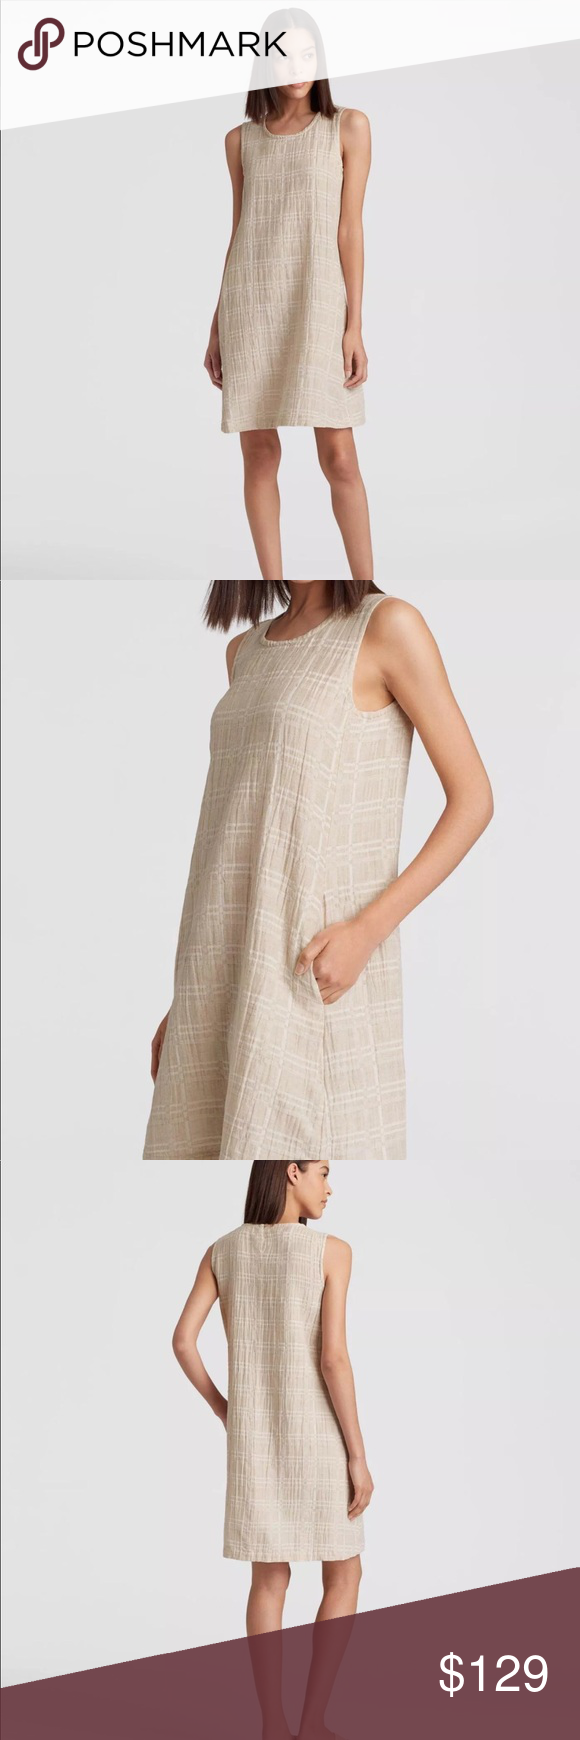 3ba591e5140 New Eileen Fisher Shift Dress Organic Linen Large Brand new with tags Size  Large Organic linen